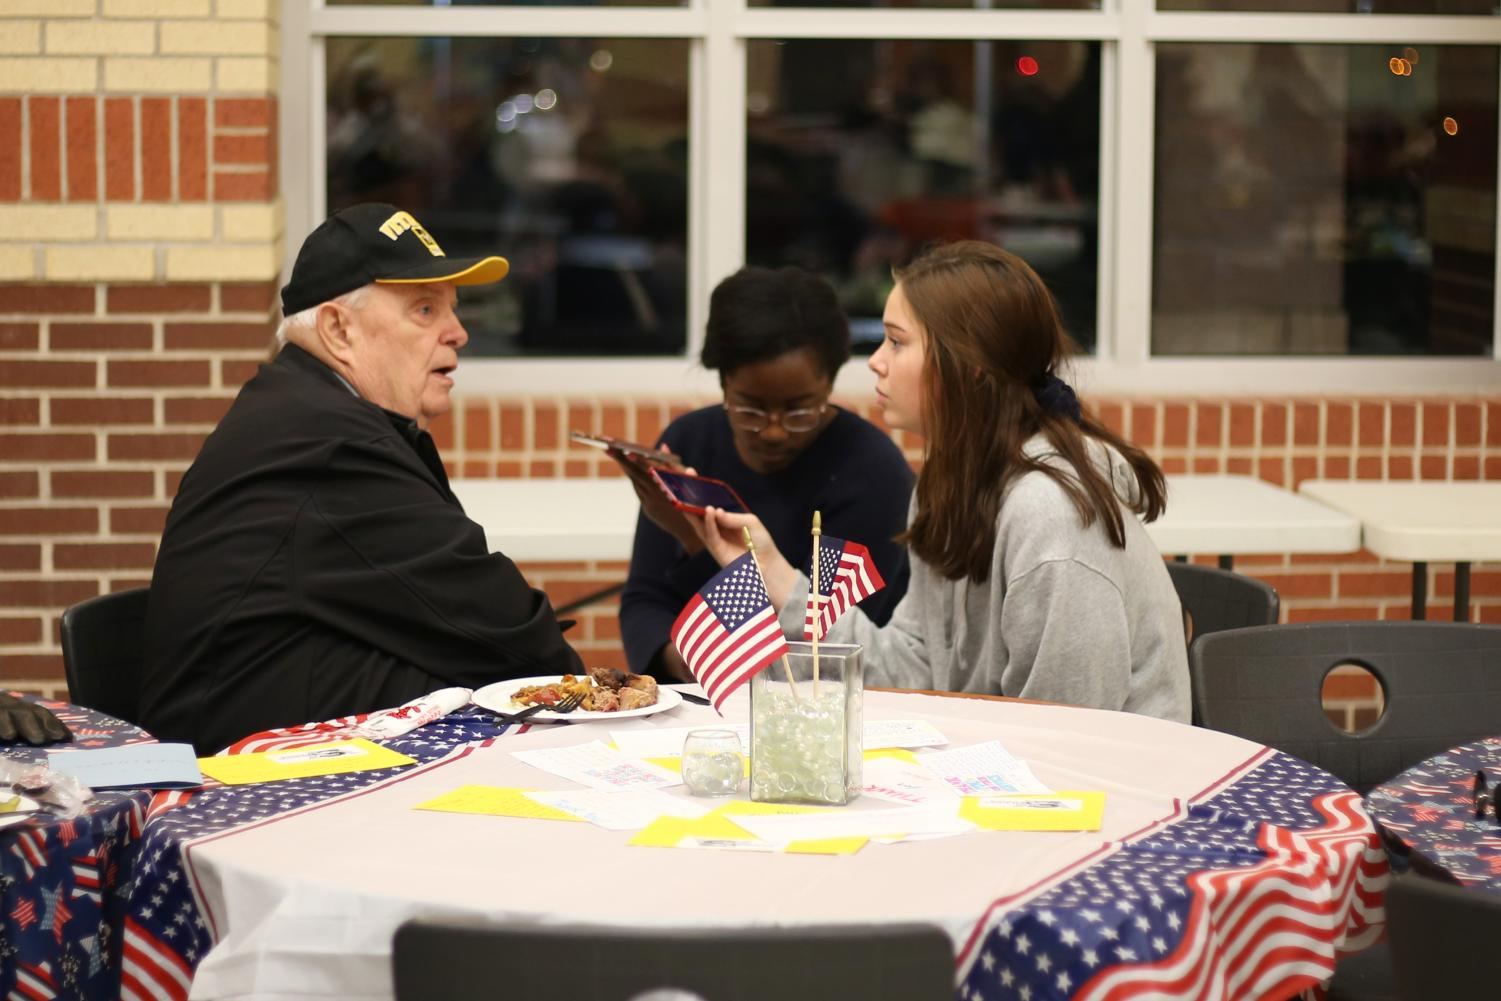 Korean War veteran William Larry O'Brien talks with reporters Suvwe Kokoricha and Lindsey Hughes.